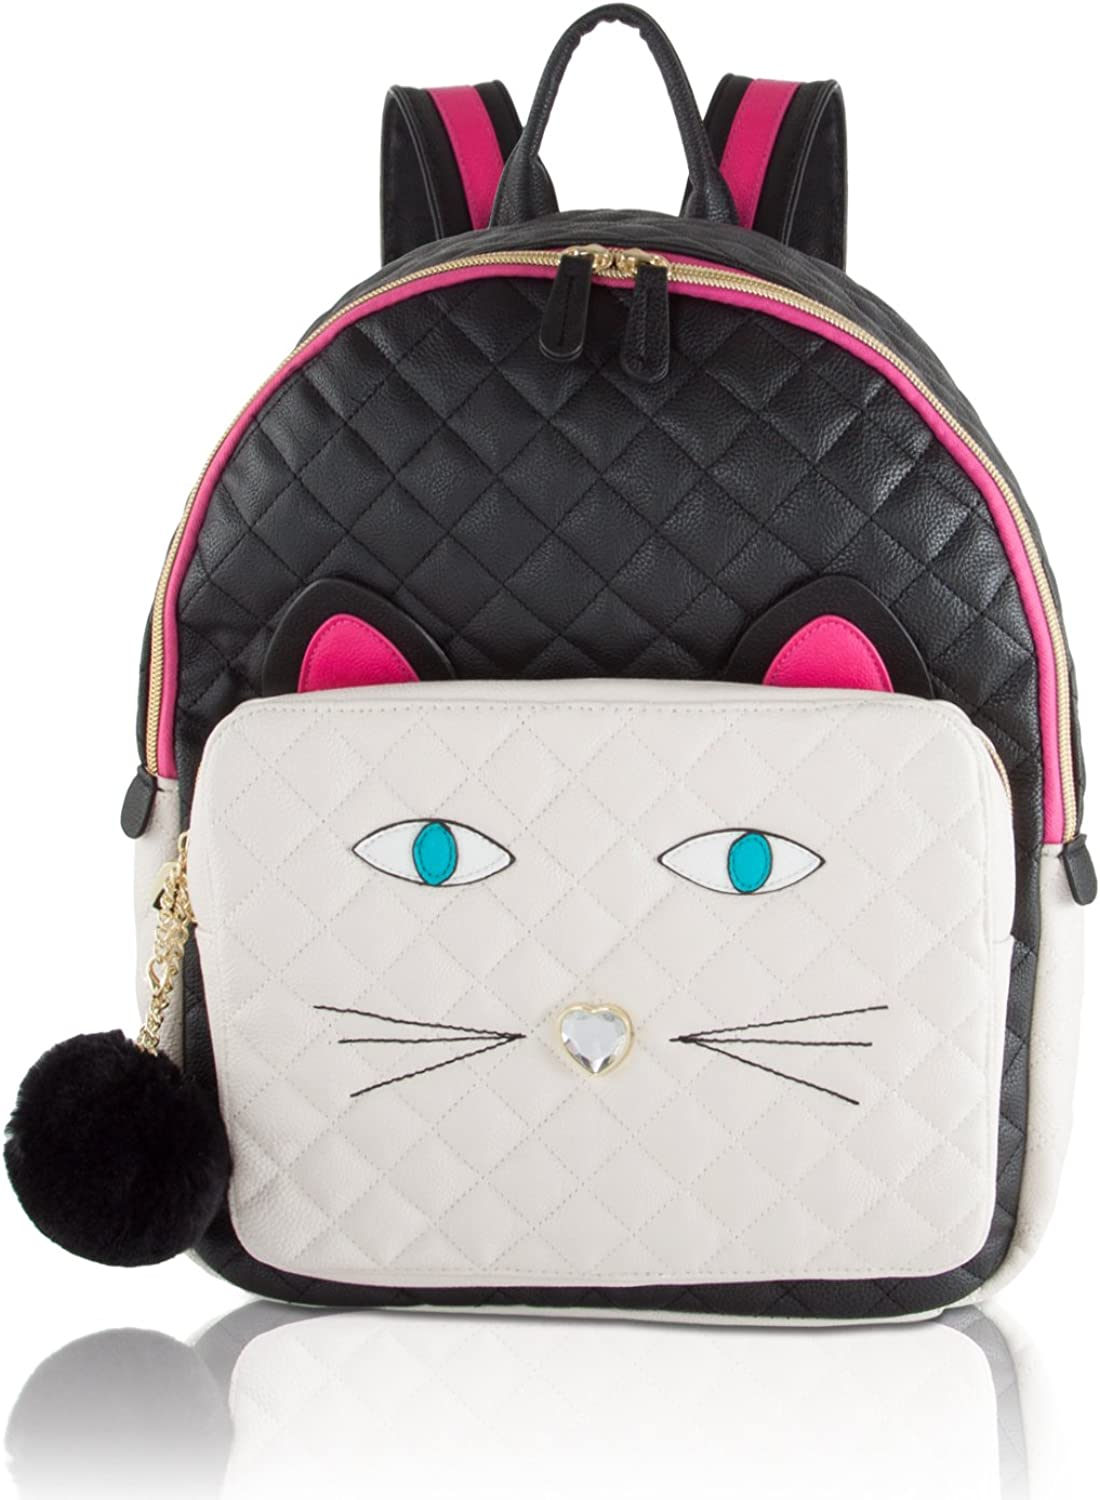 Betsey Johnson Quilted Face Large Backpack Black White